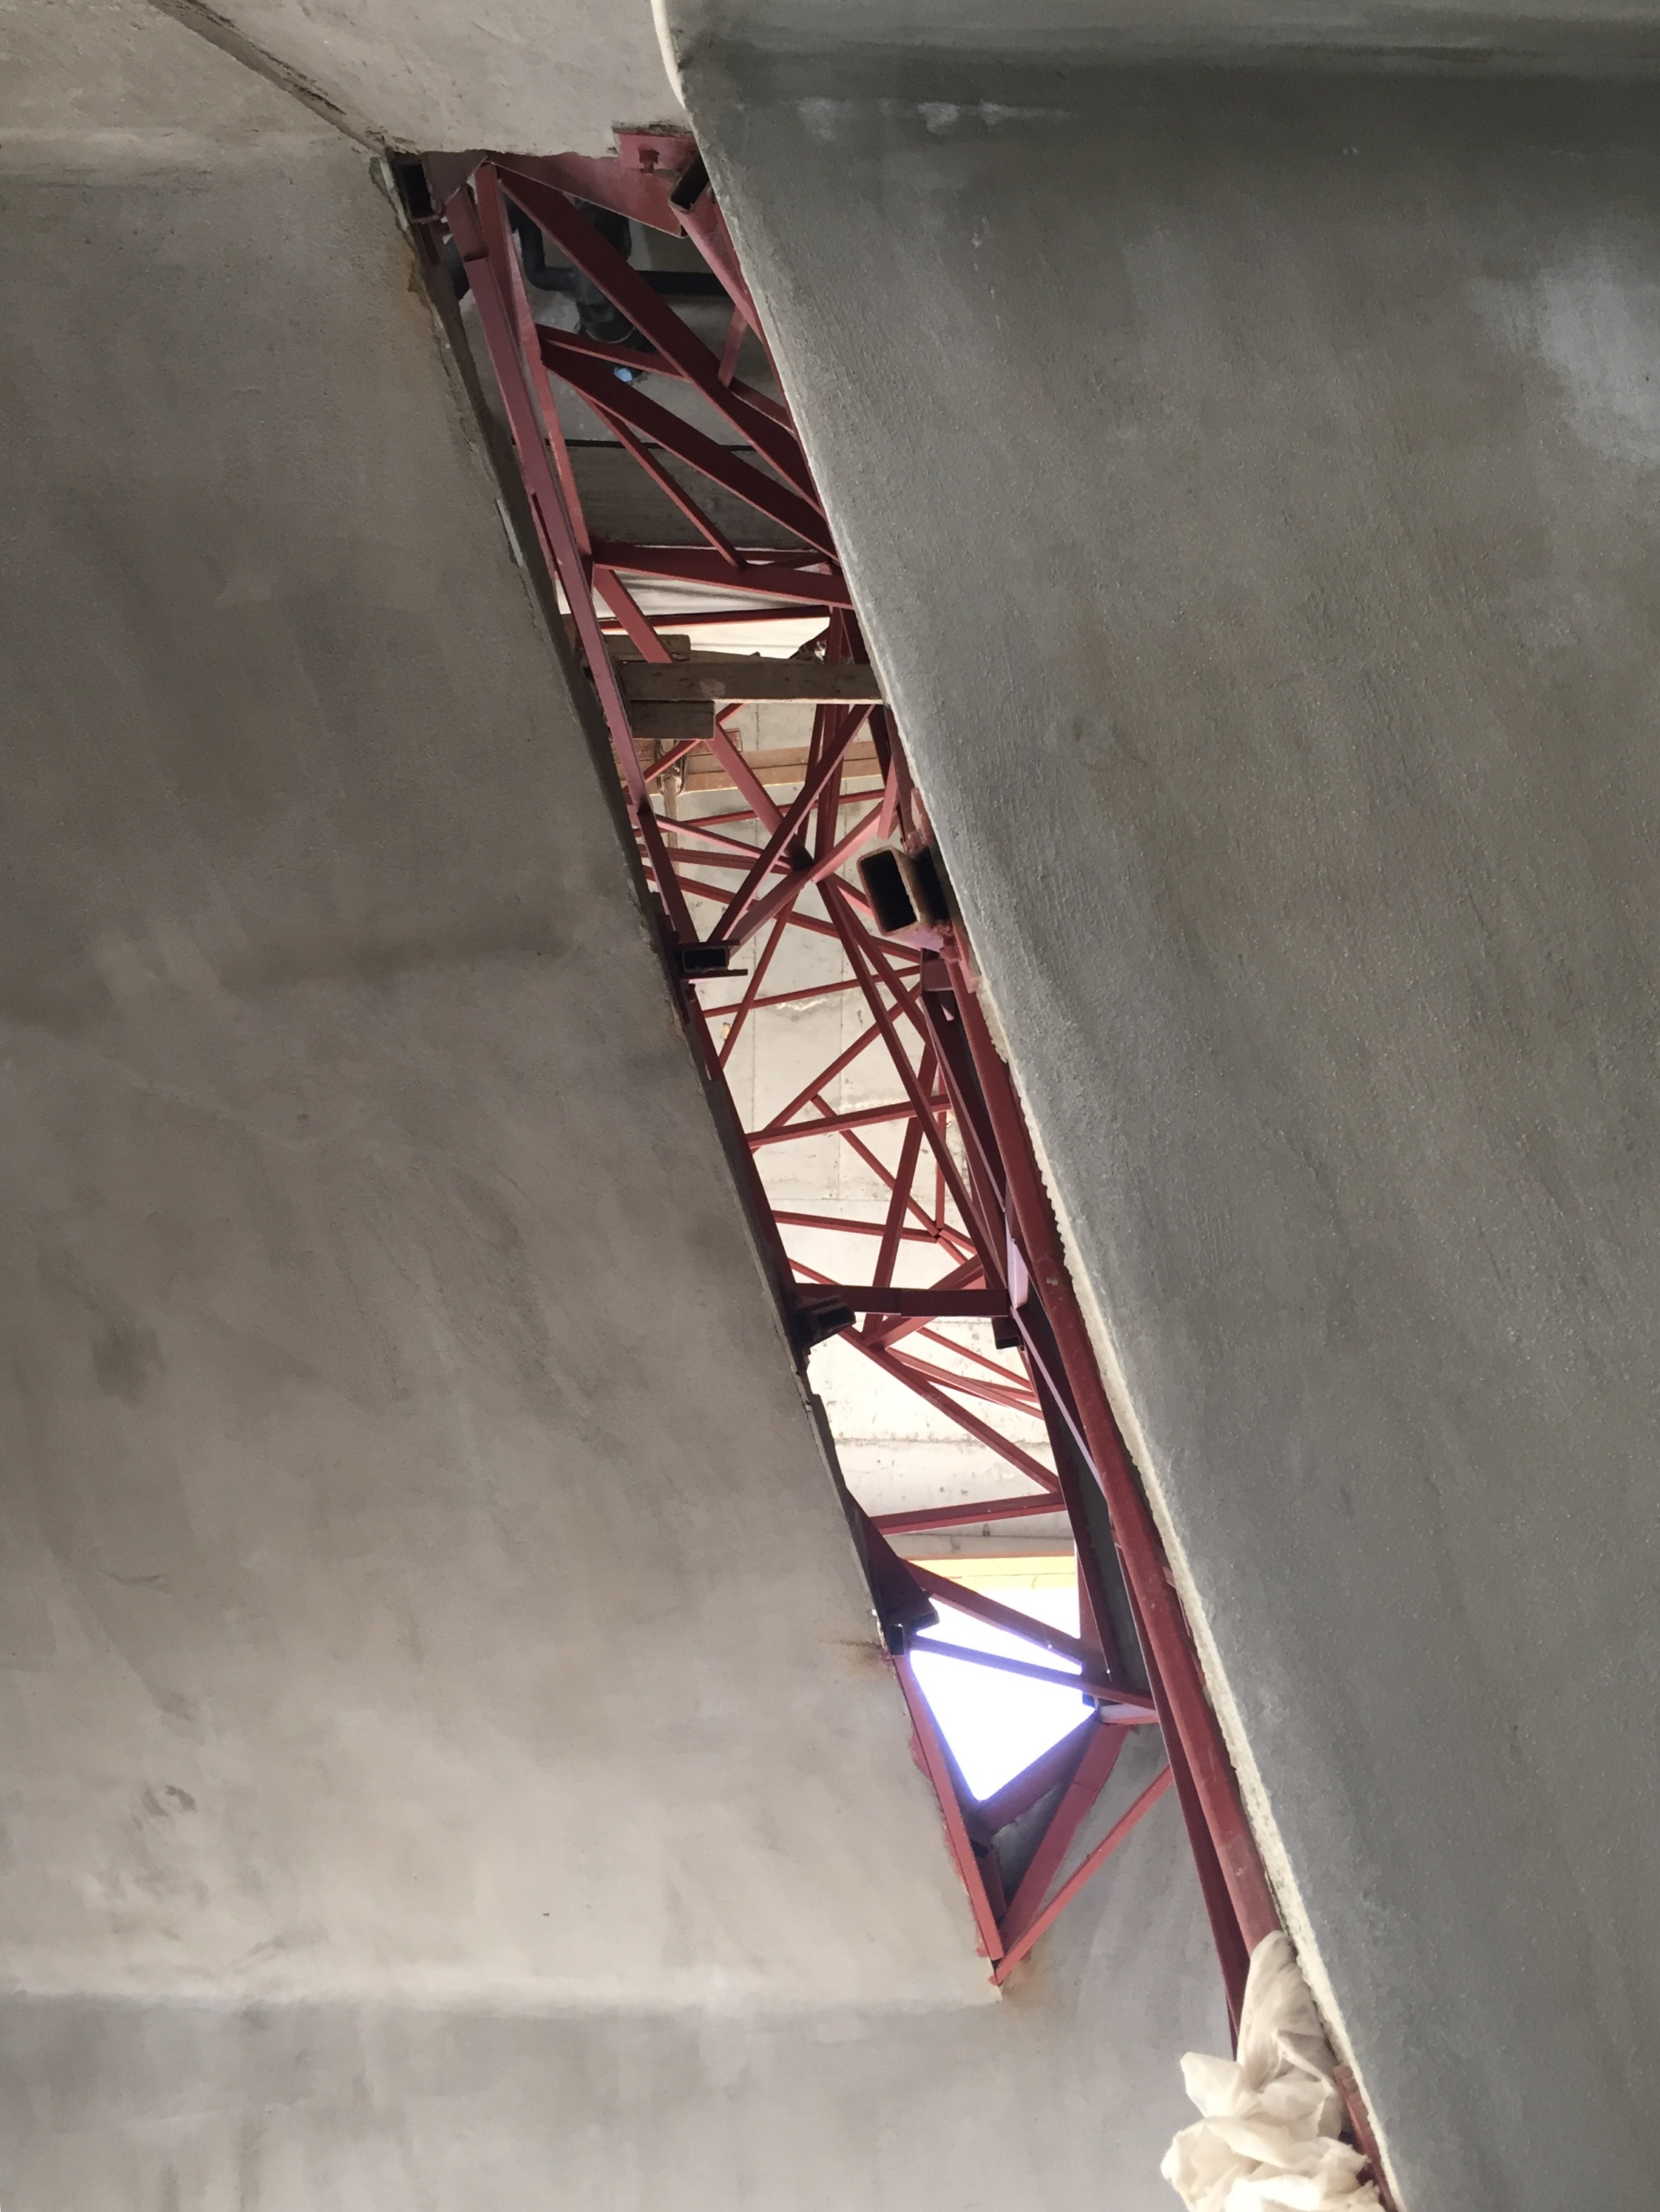 Part of the metal framing in the main stairway, to be fully cladded by wood.